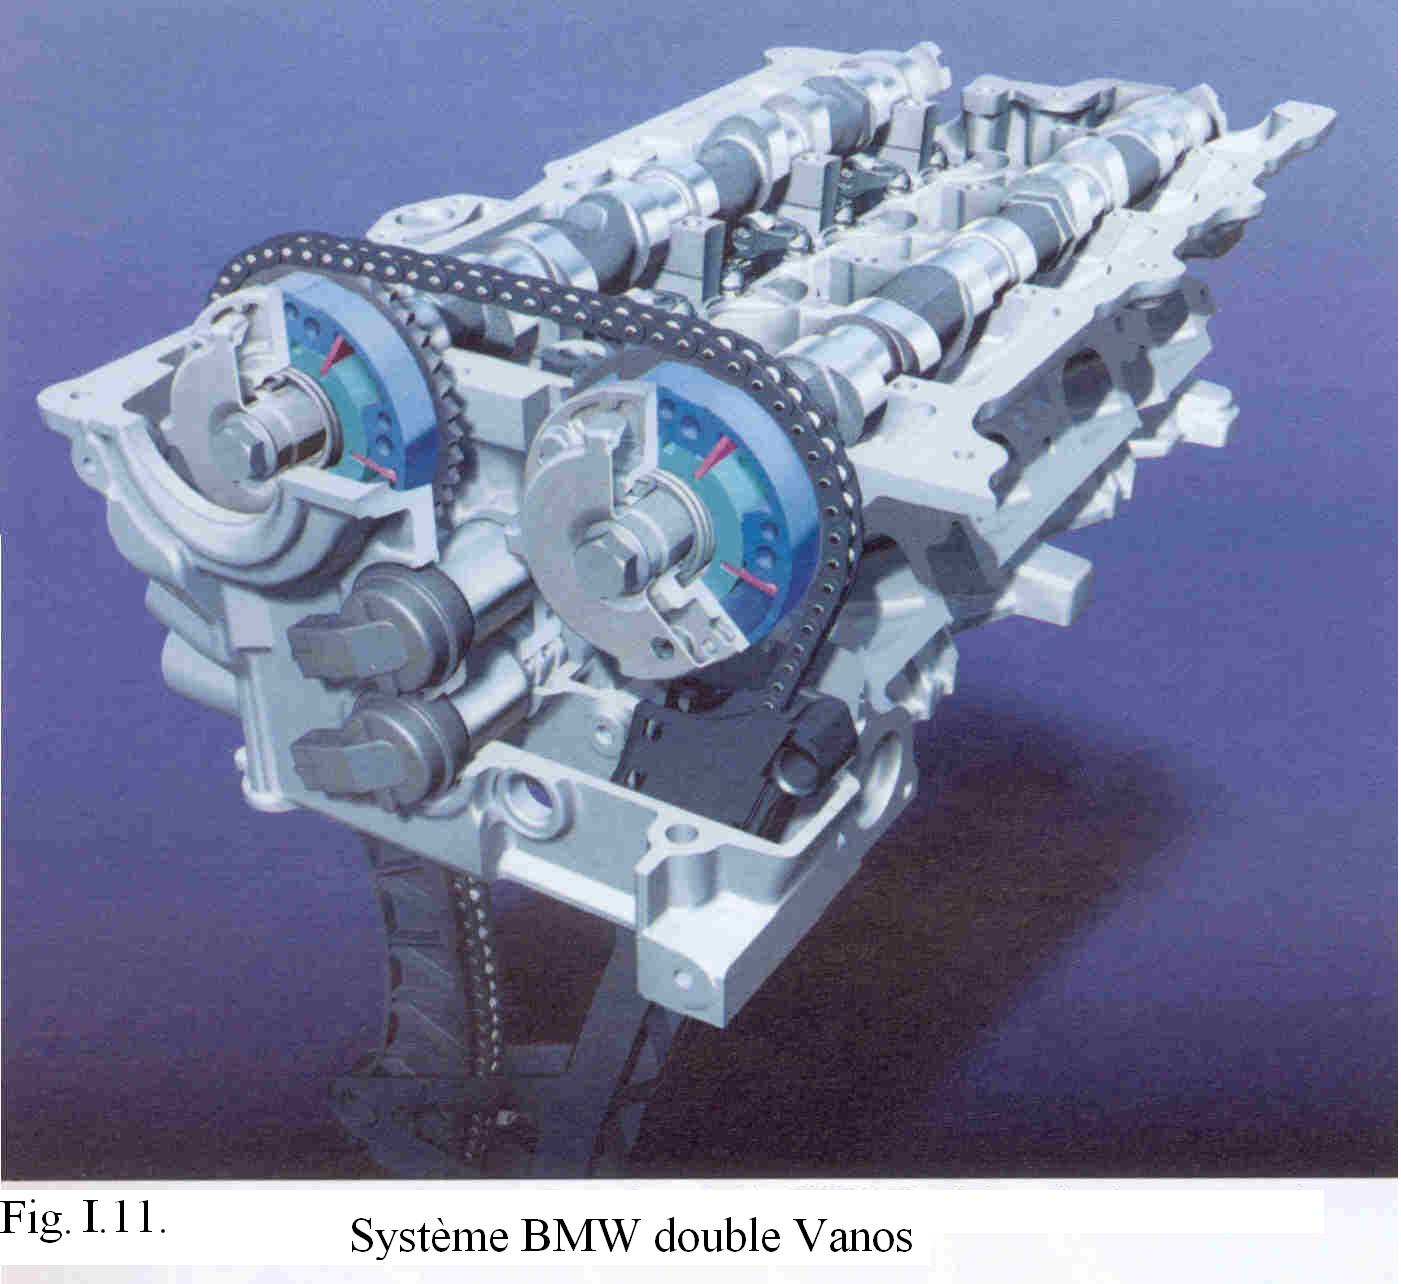 BMW vanos system for variable wedging of intake and exhaust valves